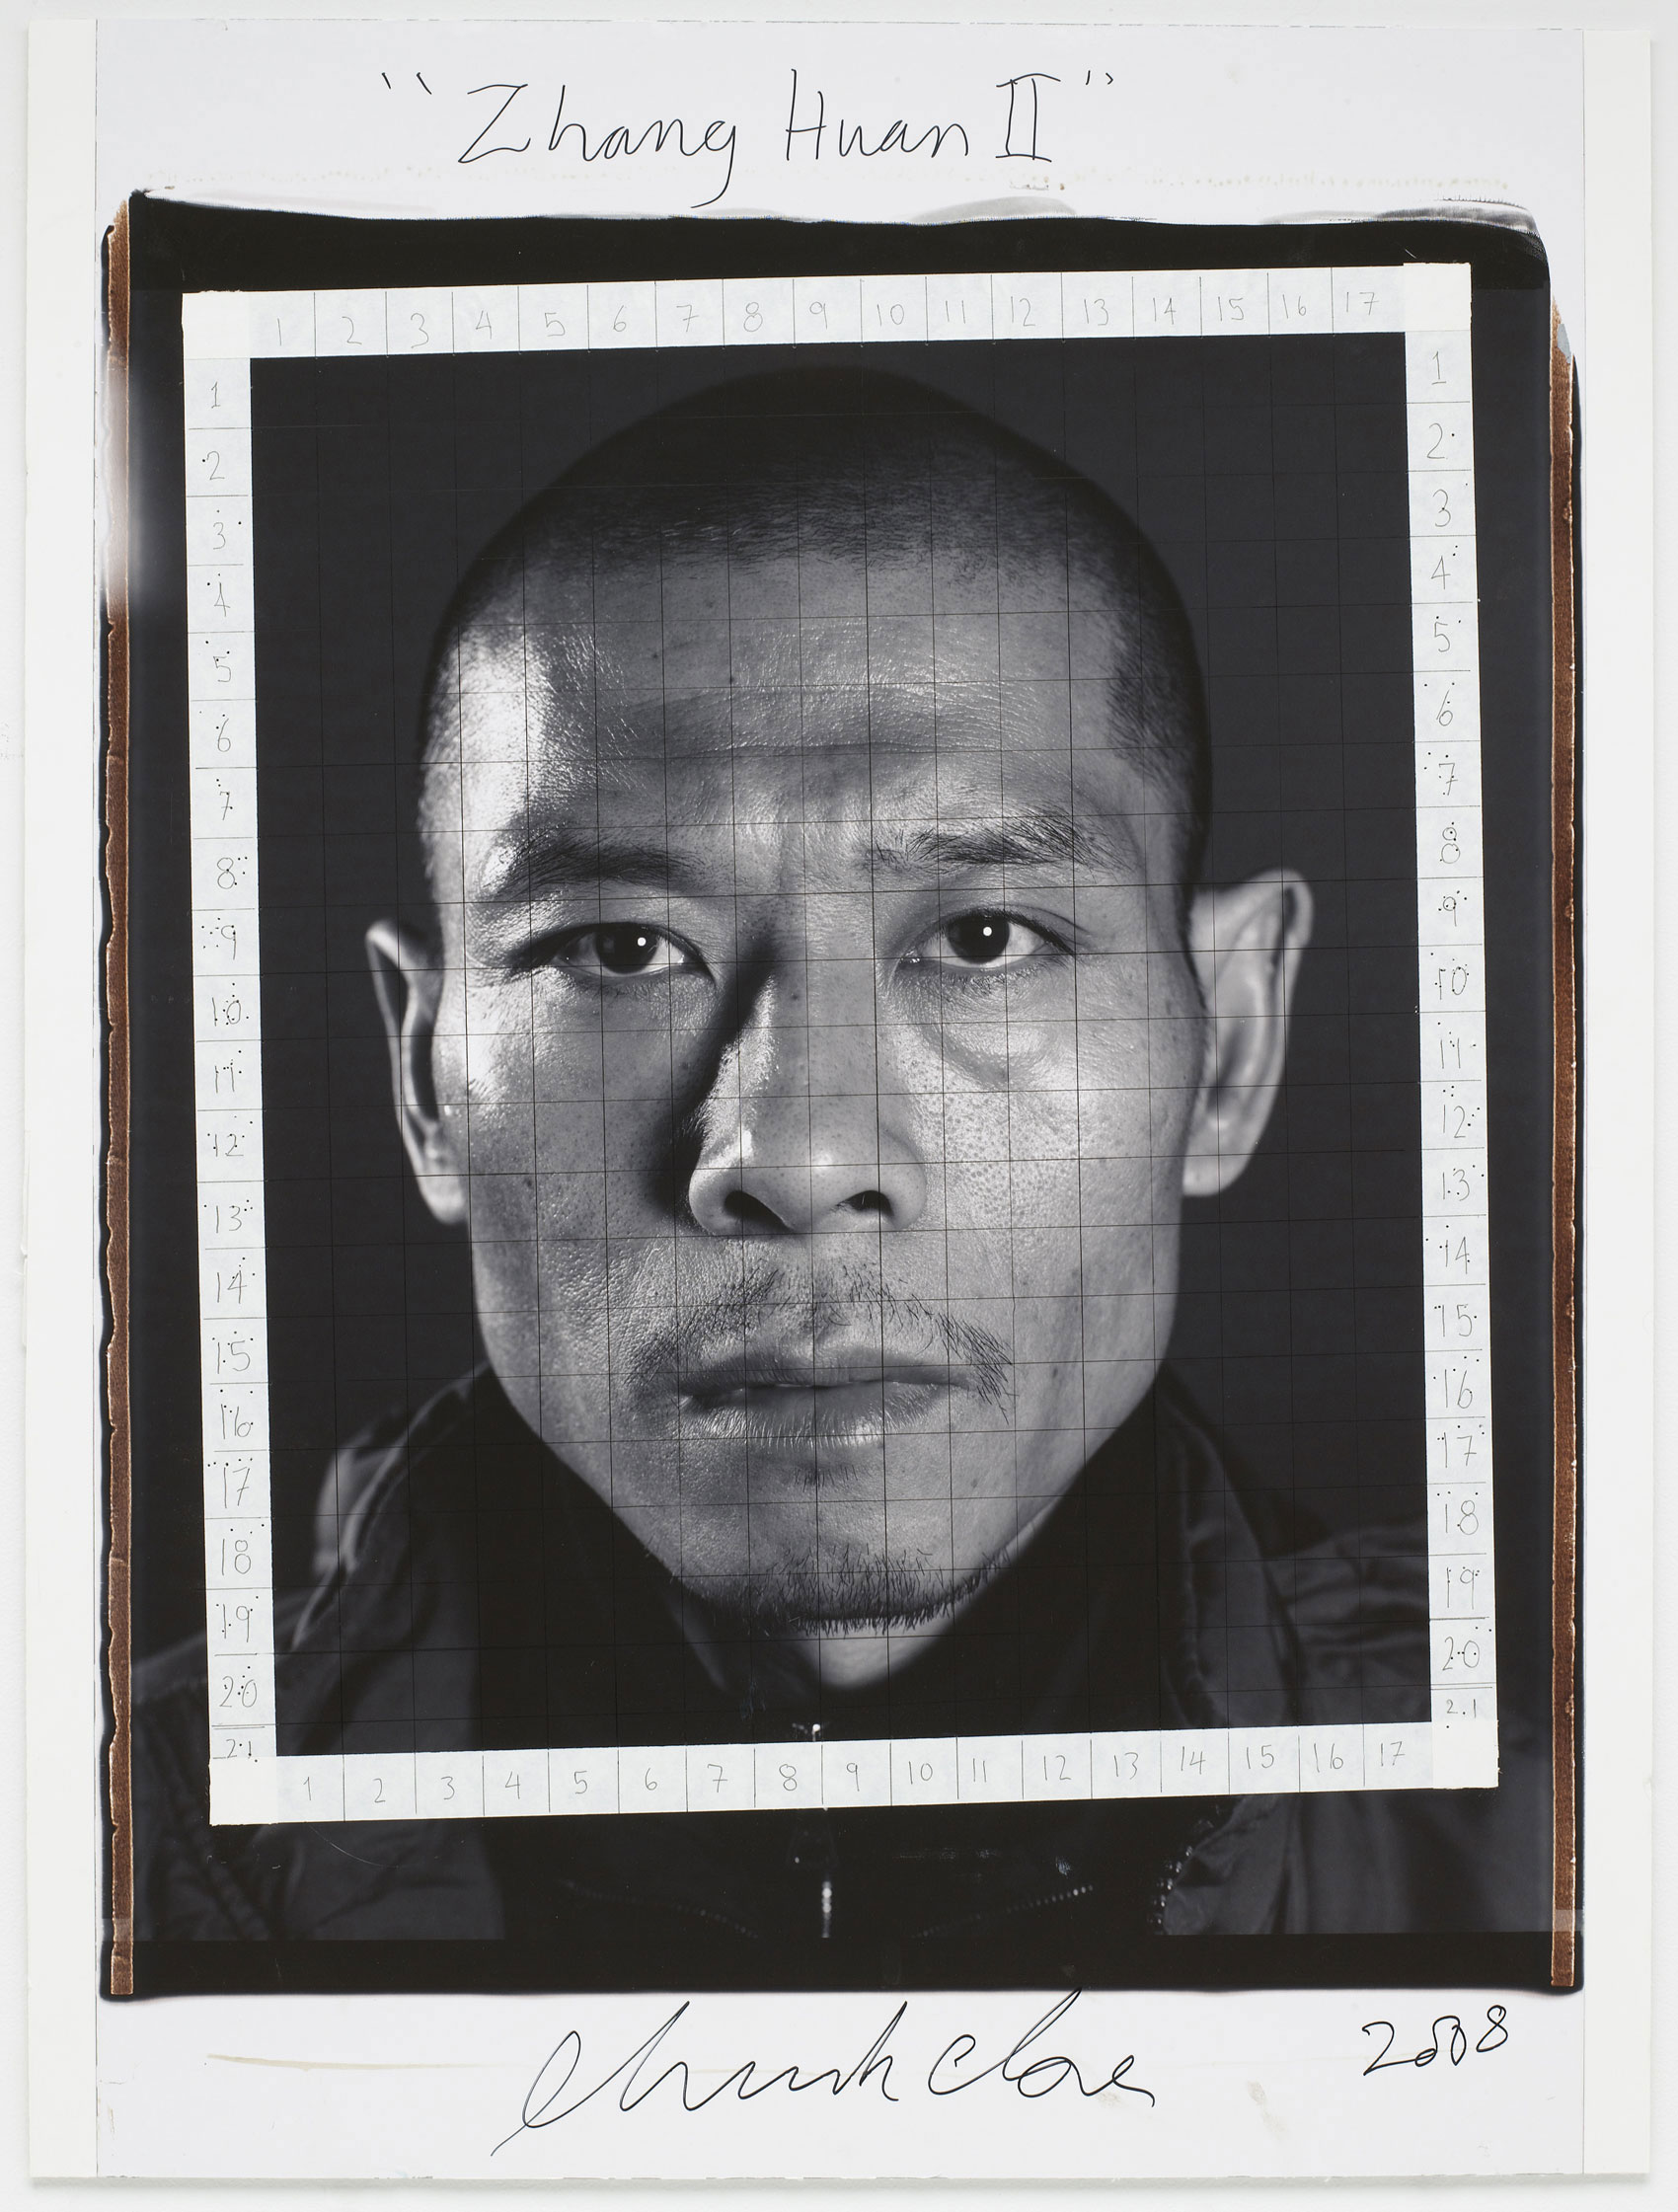 Zhang Huan II (Maquette), 2008-2009 (Photo by G. R. Christmas)'